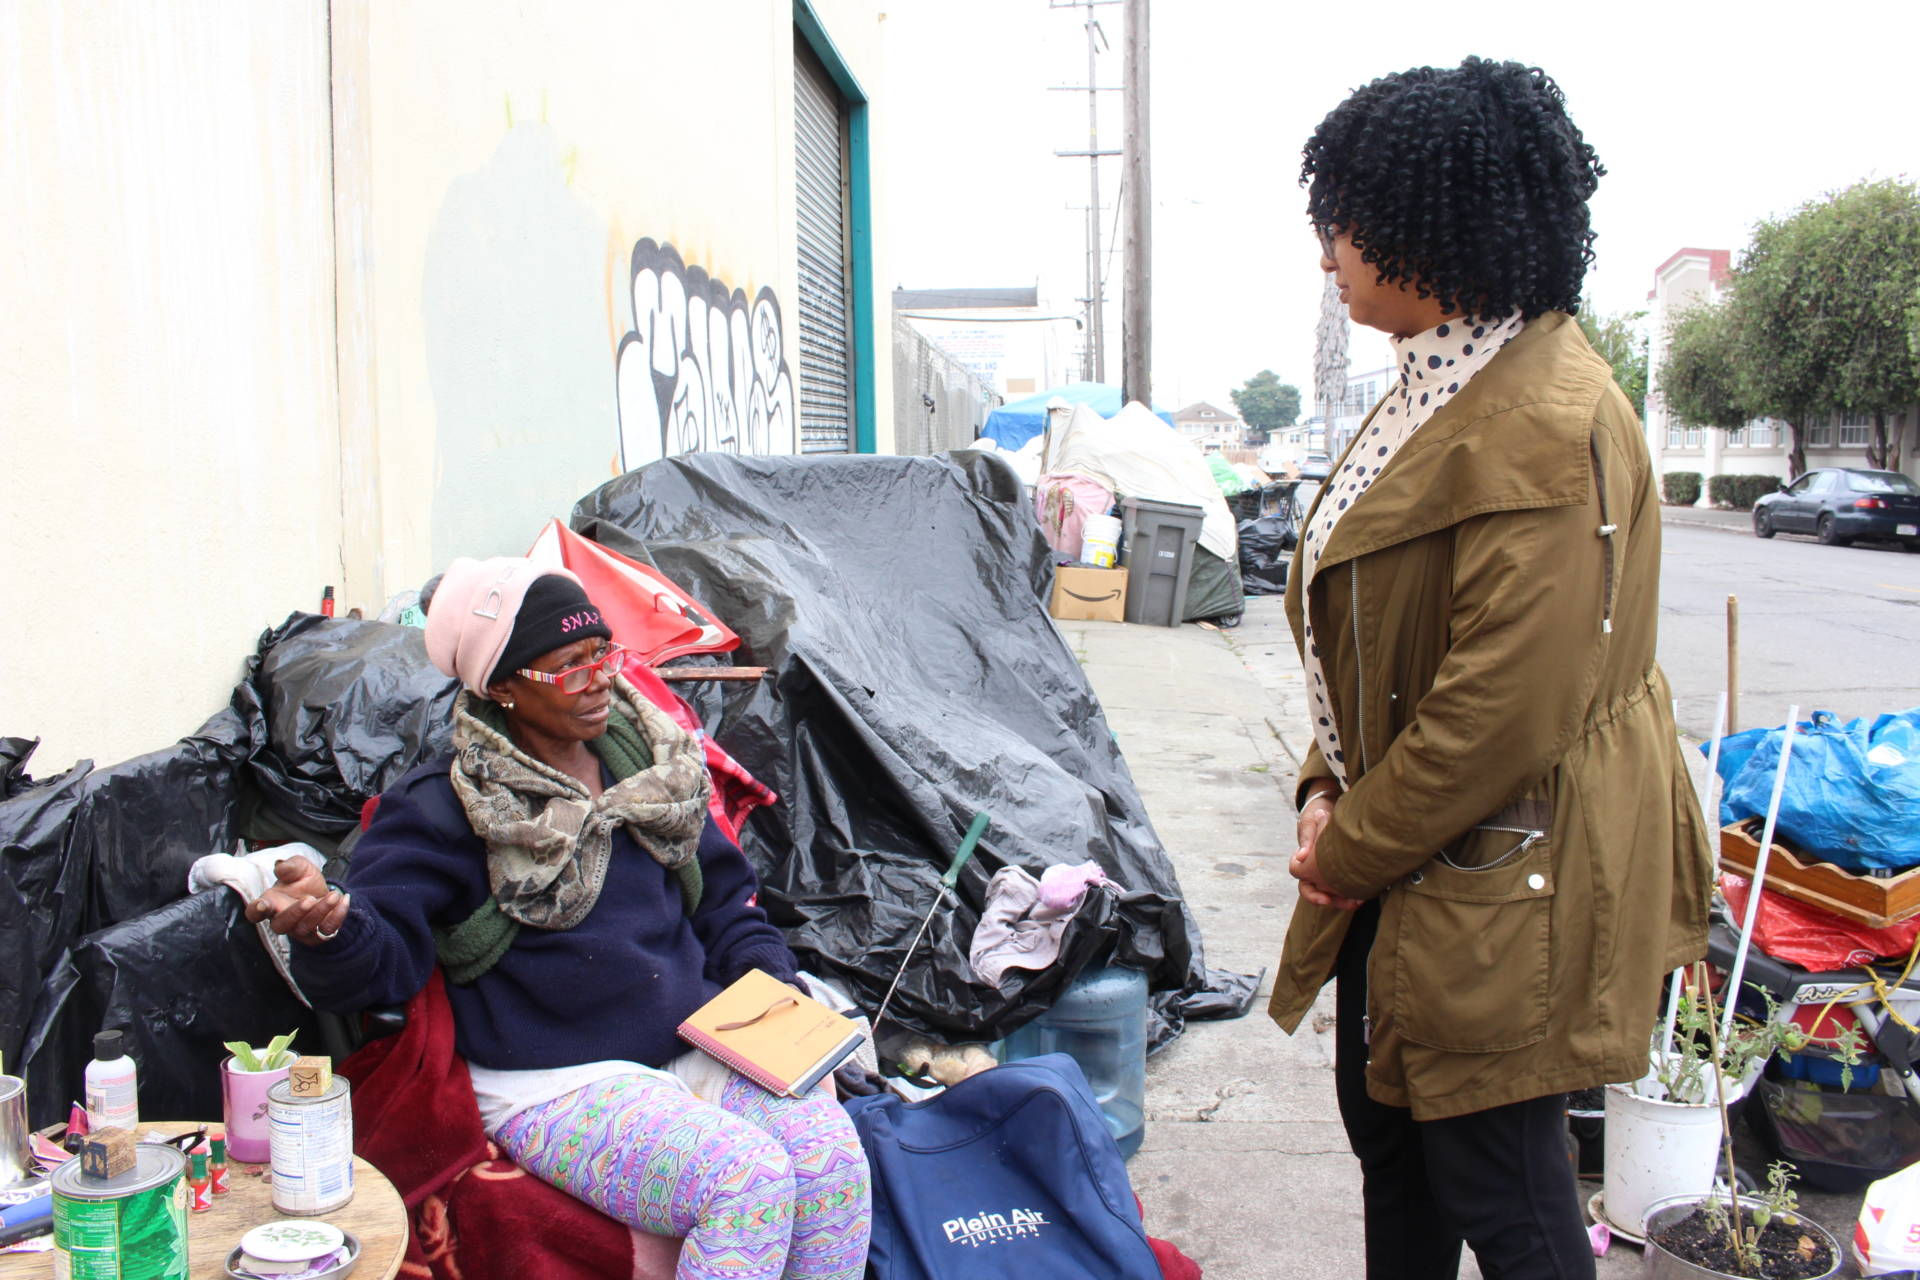 Homeless advocate Candice Elder, 34, checks in with Dorothy Smith, 65, at an encampment in Oakland on Aug. 24, 2018. Smith, who raised her children in the city, said her disability benefits are not enough to afford housing. 'It just don't support me,' she said.  Farida Jhabvala Romero/KQED